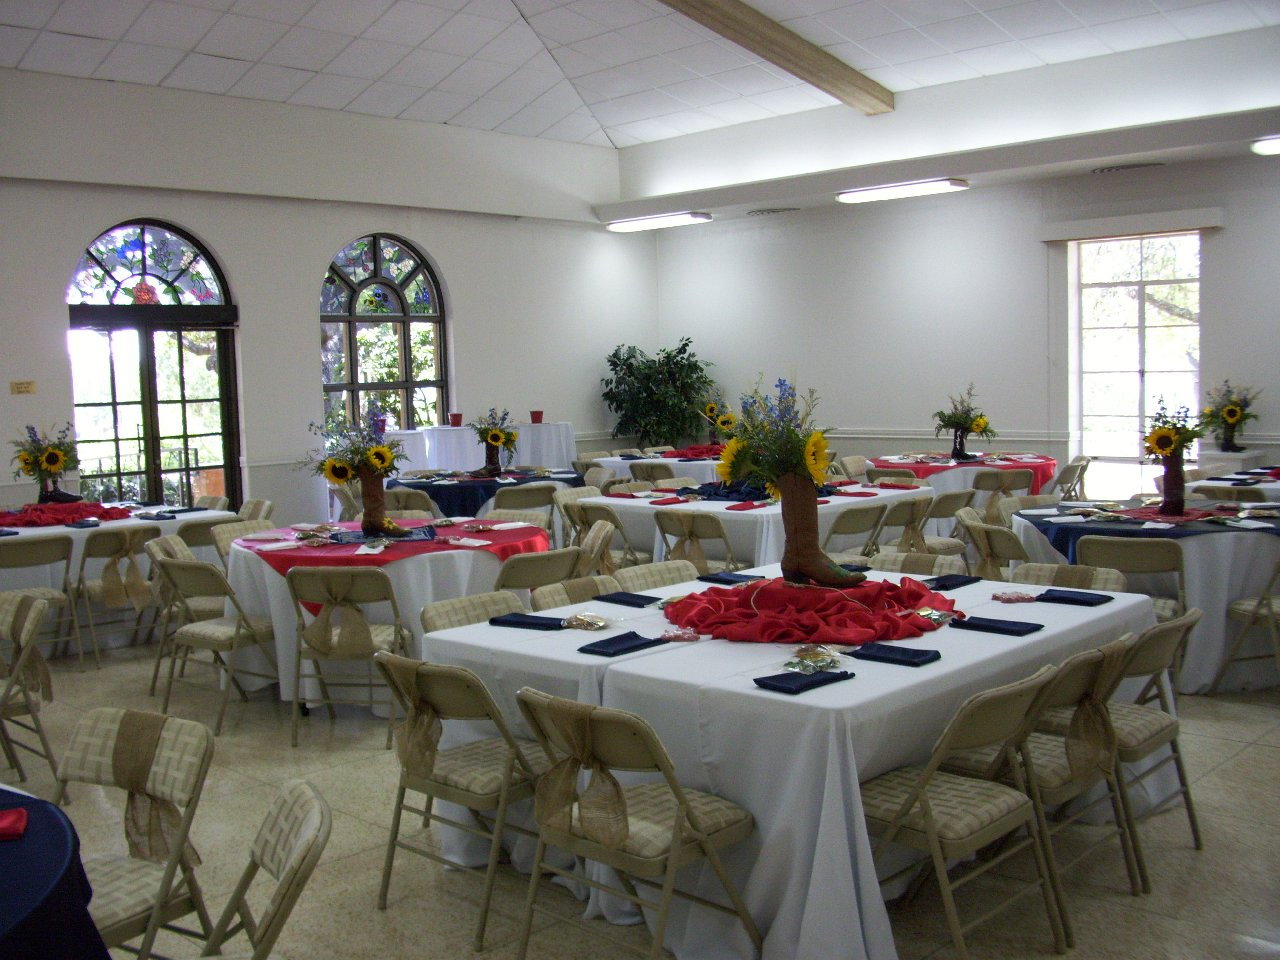 Informal gatherings and luncheons are a memorable occasion